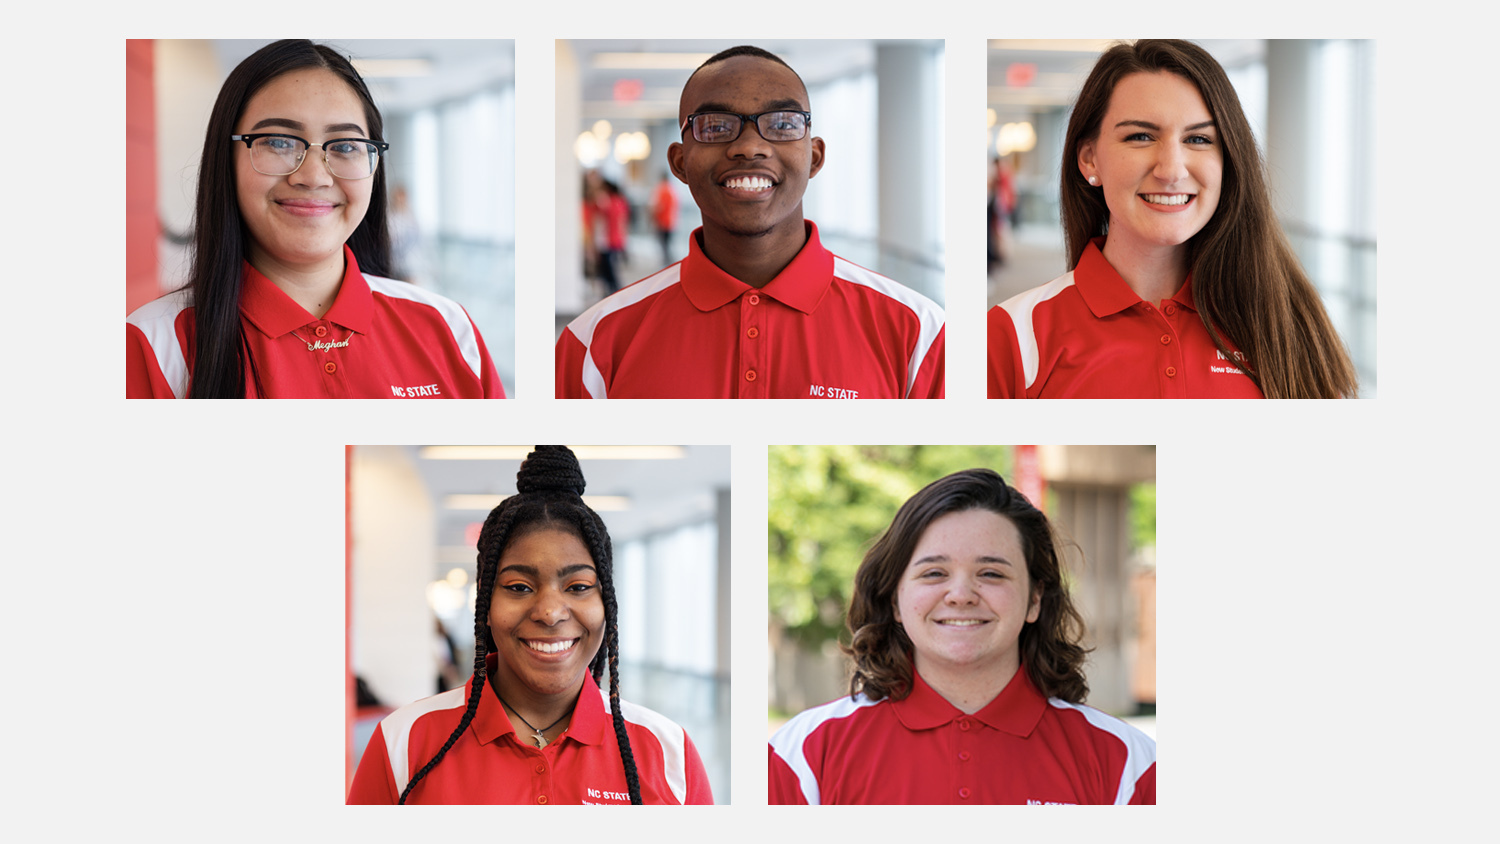 College of Education Orientation Leaders